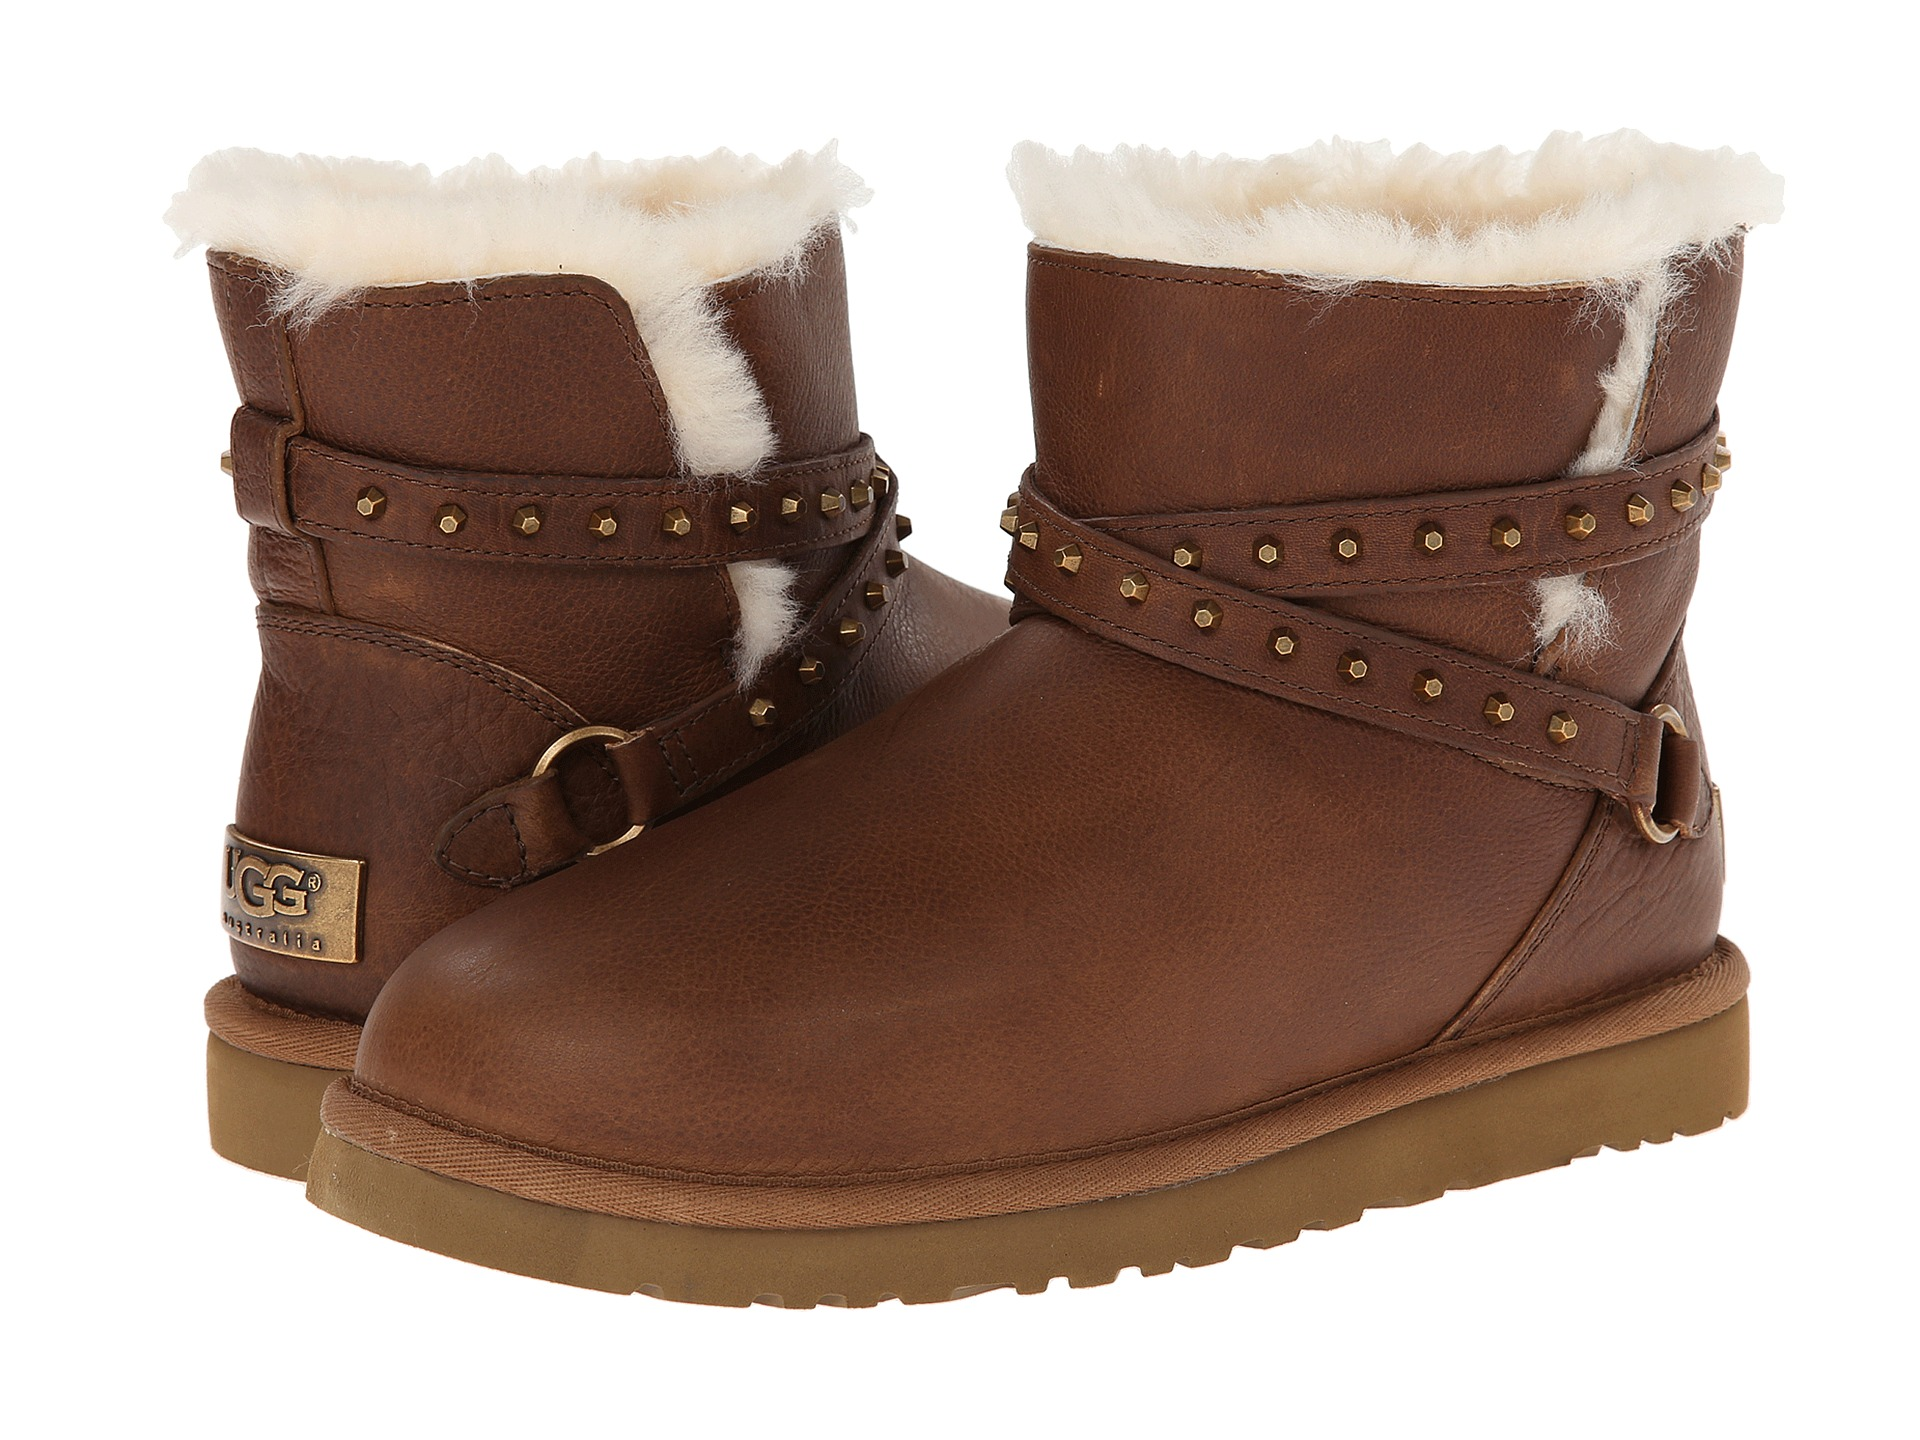 95ab2257379 Ugg Leather Emerson Boots - cheap watches mgc-gas.com